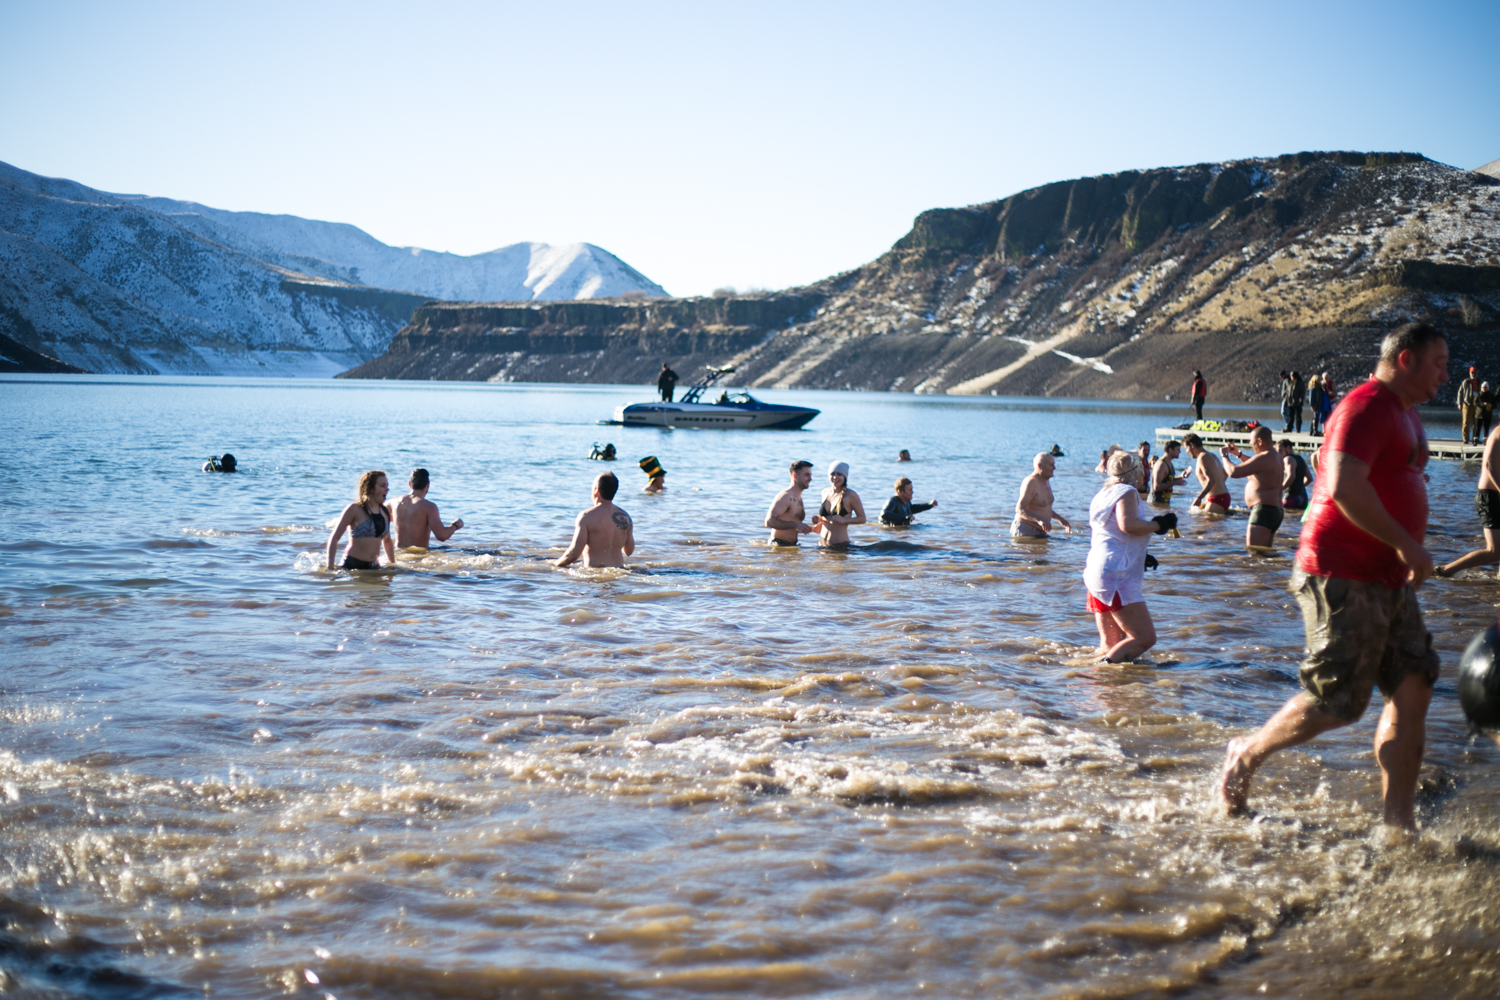 Brave individuals kick off the New Year by plunging into the icy waters of Lucky Peak at the Great Polar Bear Challenge. The event is a fundraiser where people of all ages dive into lake to raise funds for Idaho's wish children. (Kristen McPeek Photo)